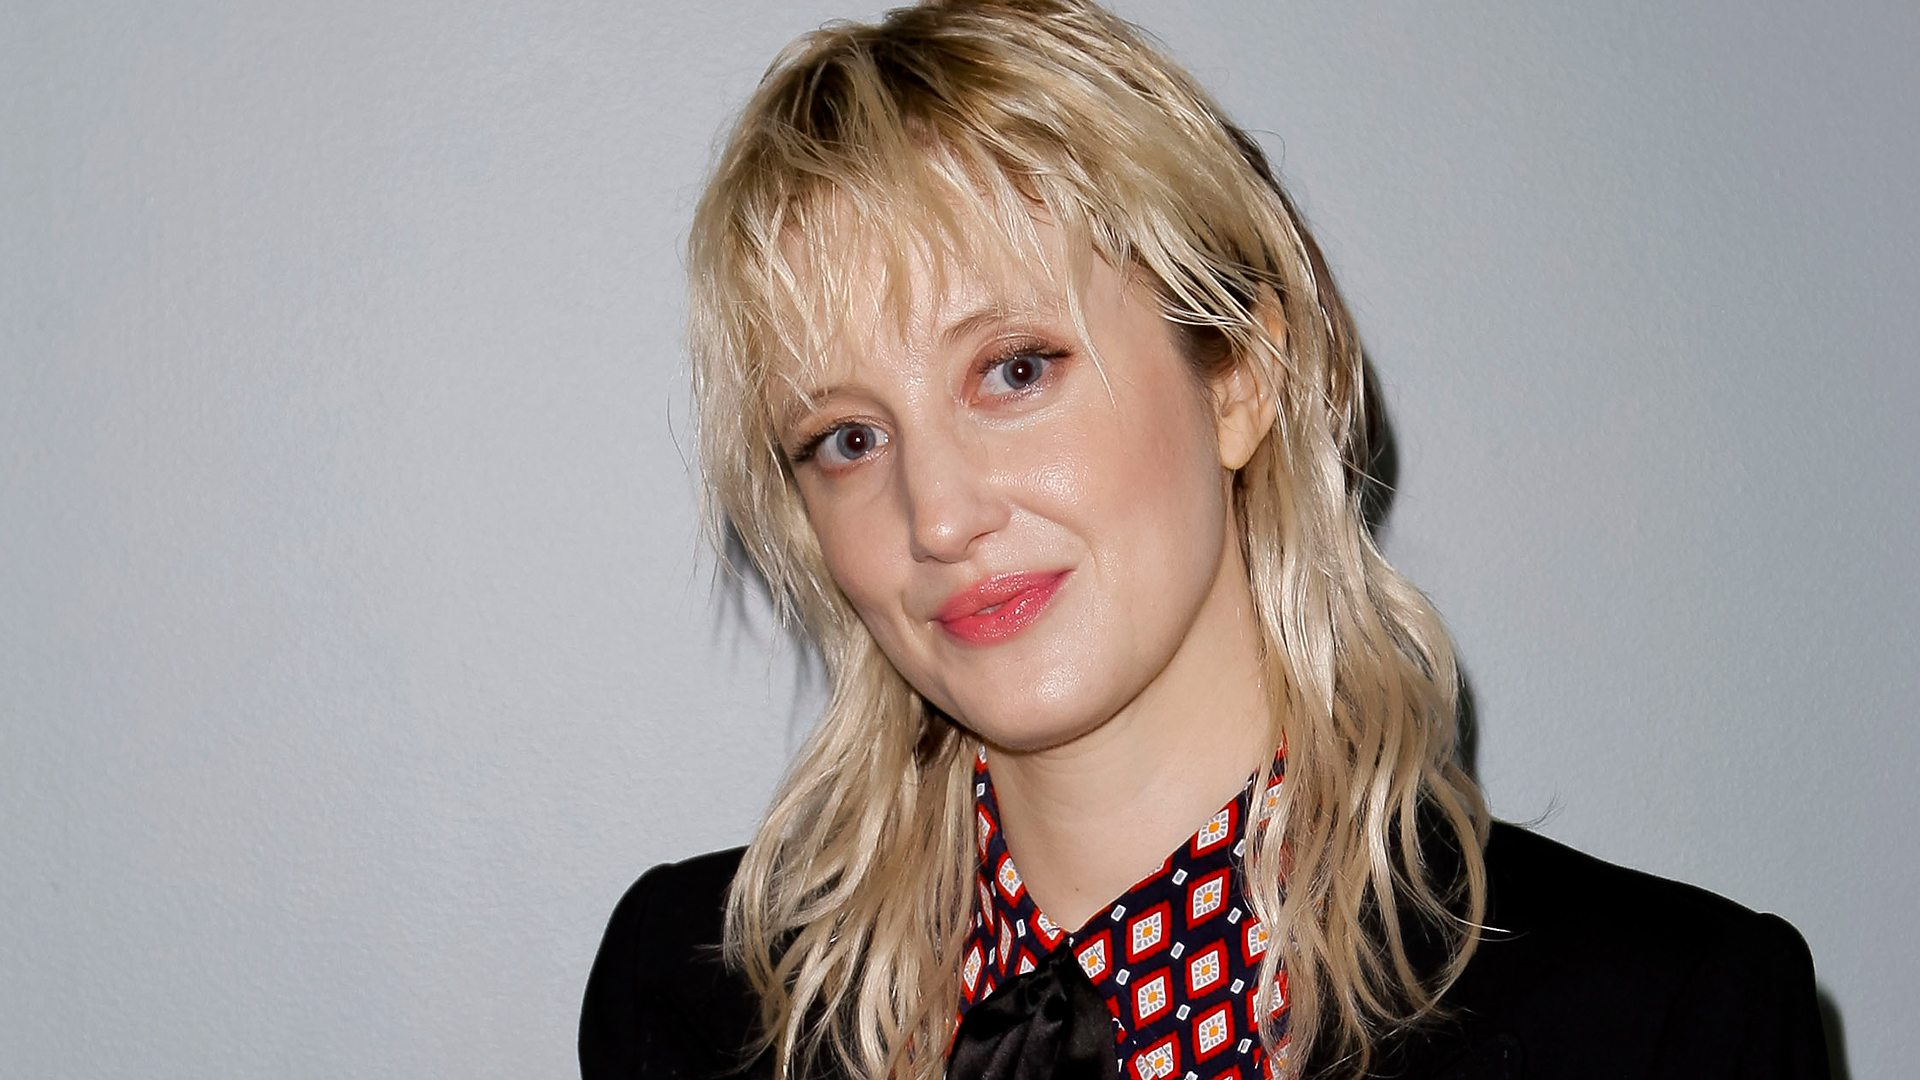 Bbc radio 4 womans hour andrea riseborough maternity leave and bbc radio 4 womans hour andrea riseborough maternity leave and premature babies the secret lives of hair thecheapjerseys Image collections